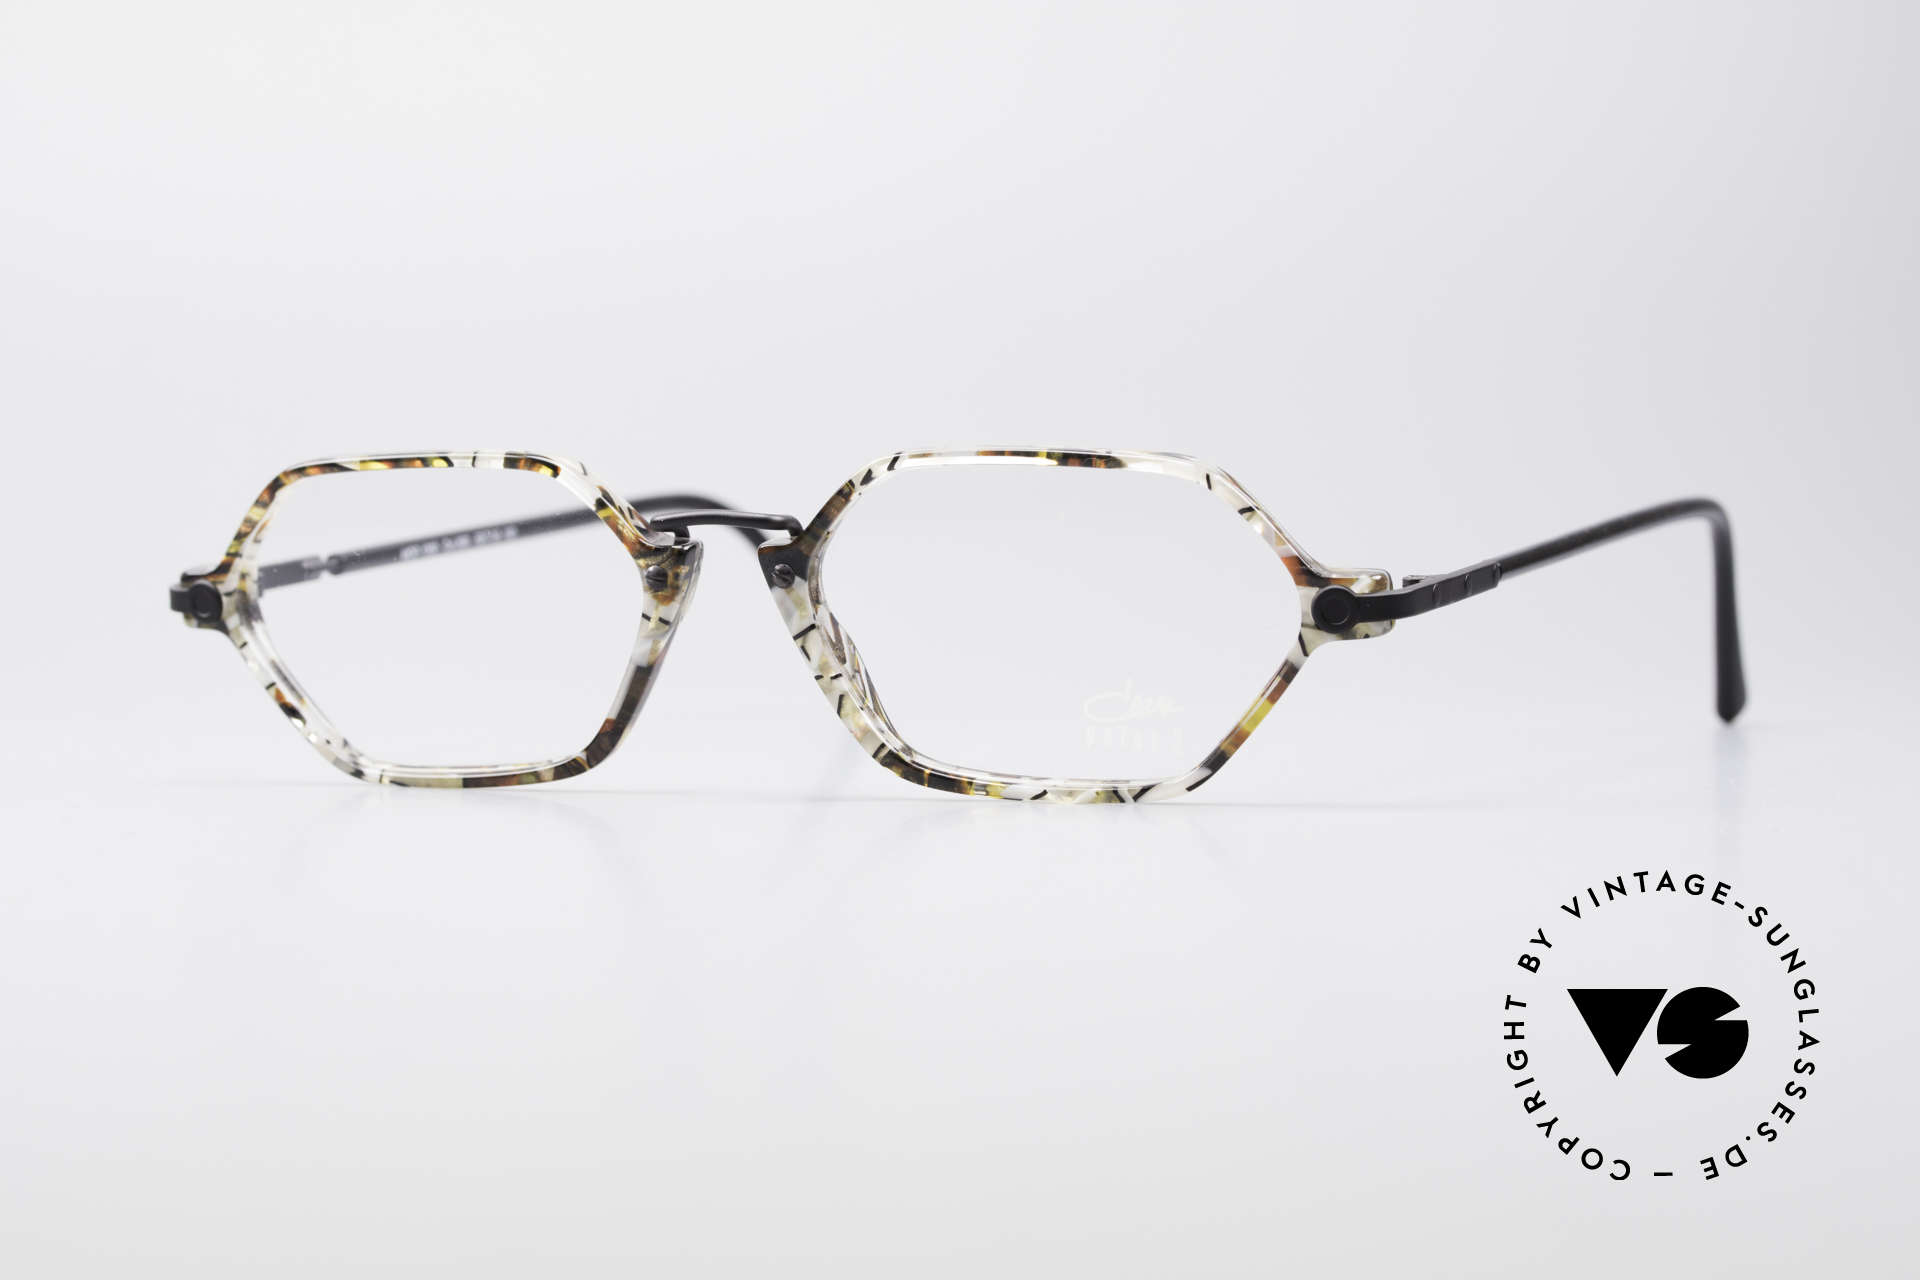 Cazal 1302 - Point 2 Octagonal 90's Eyeglass-Frame, subtle & filigree vintage designer eyeglasses by CAZAL, Made for Men and Women